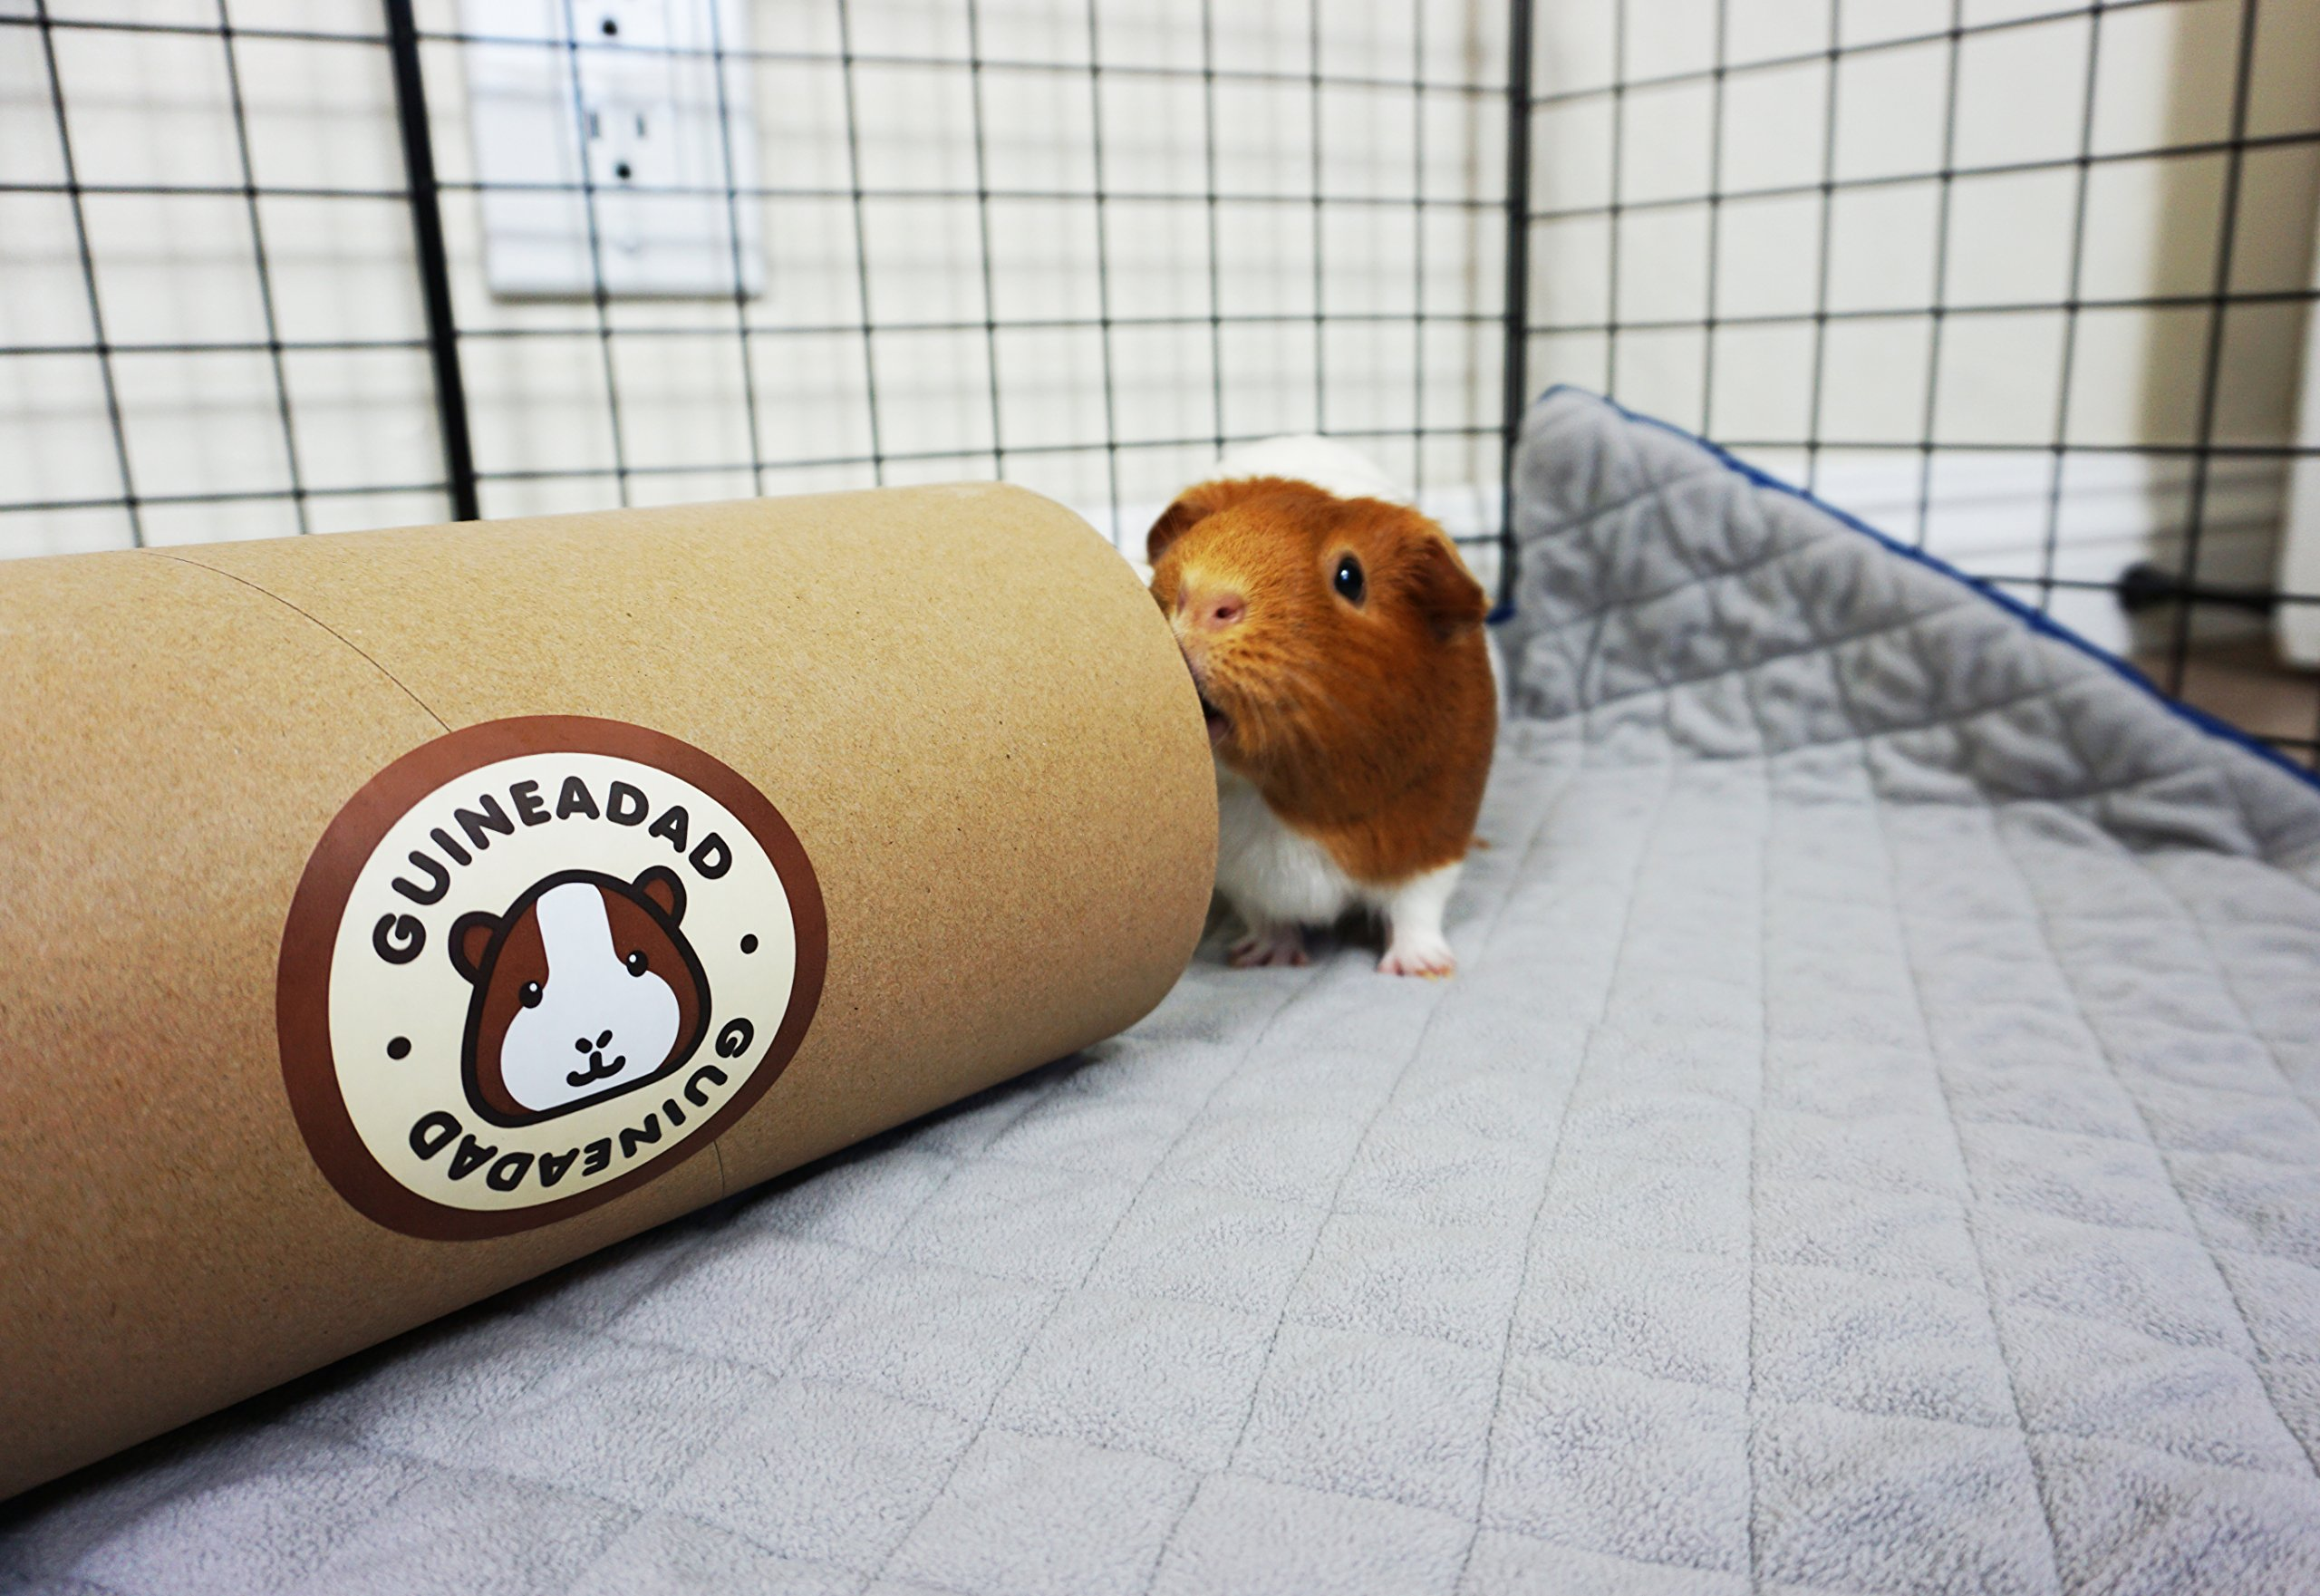 GuineaDad Fleece Liner 2.0 for | Guinea Pig Fleece Cage Liners | Guinea Pig Bedding | Extra Absorbent Antibacterial Bamboo | Waterproof | Available Various Cage Sizes by GuineaDad (Image #3)